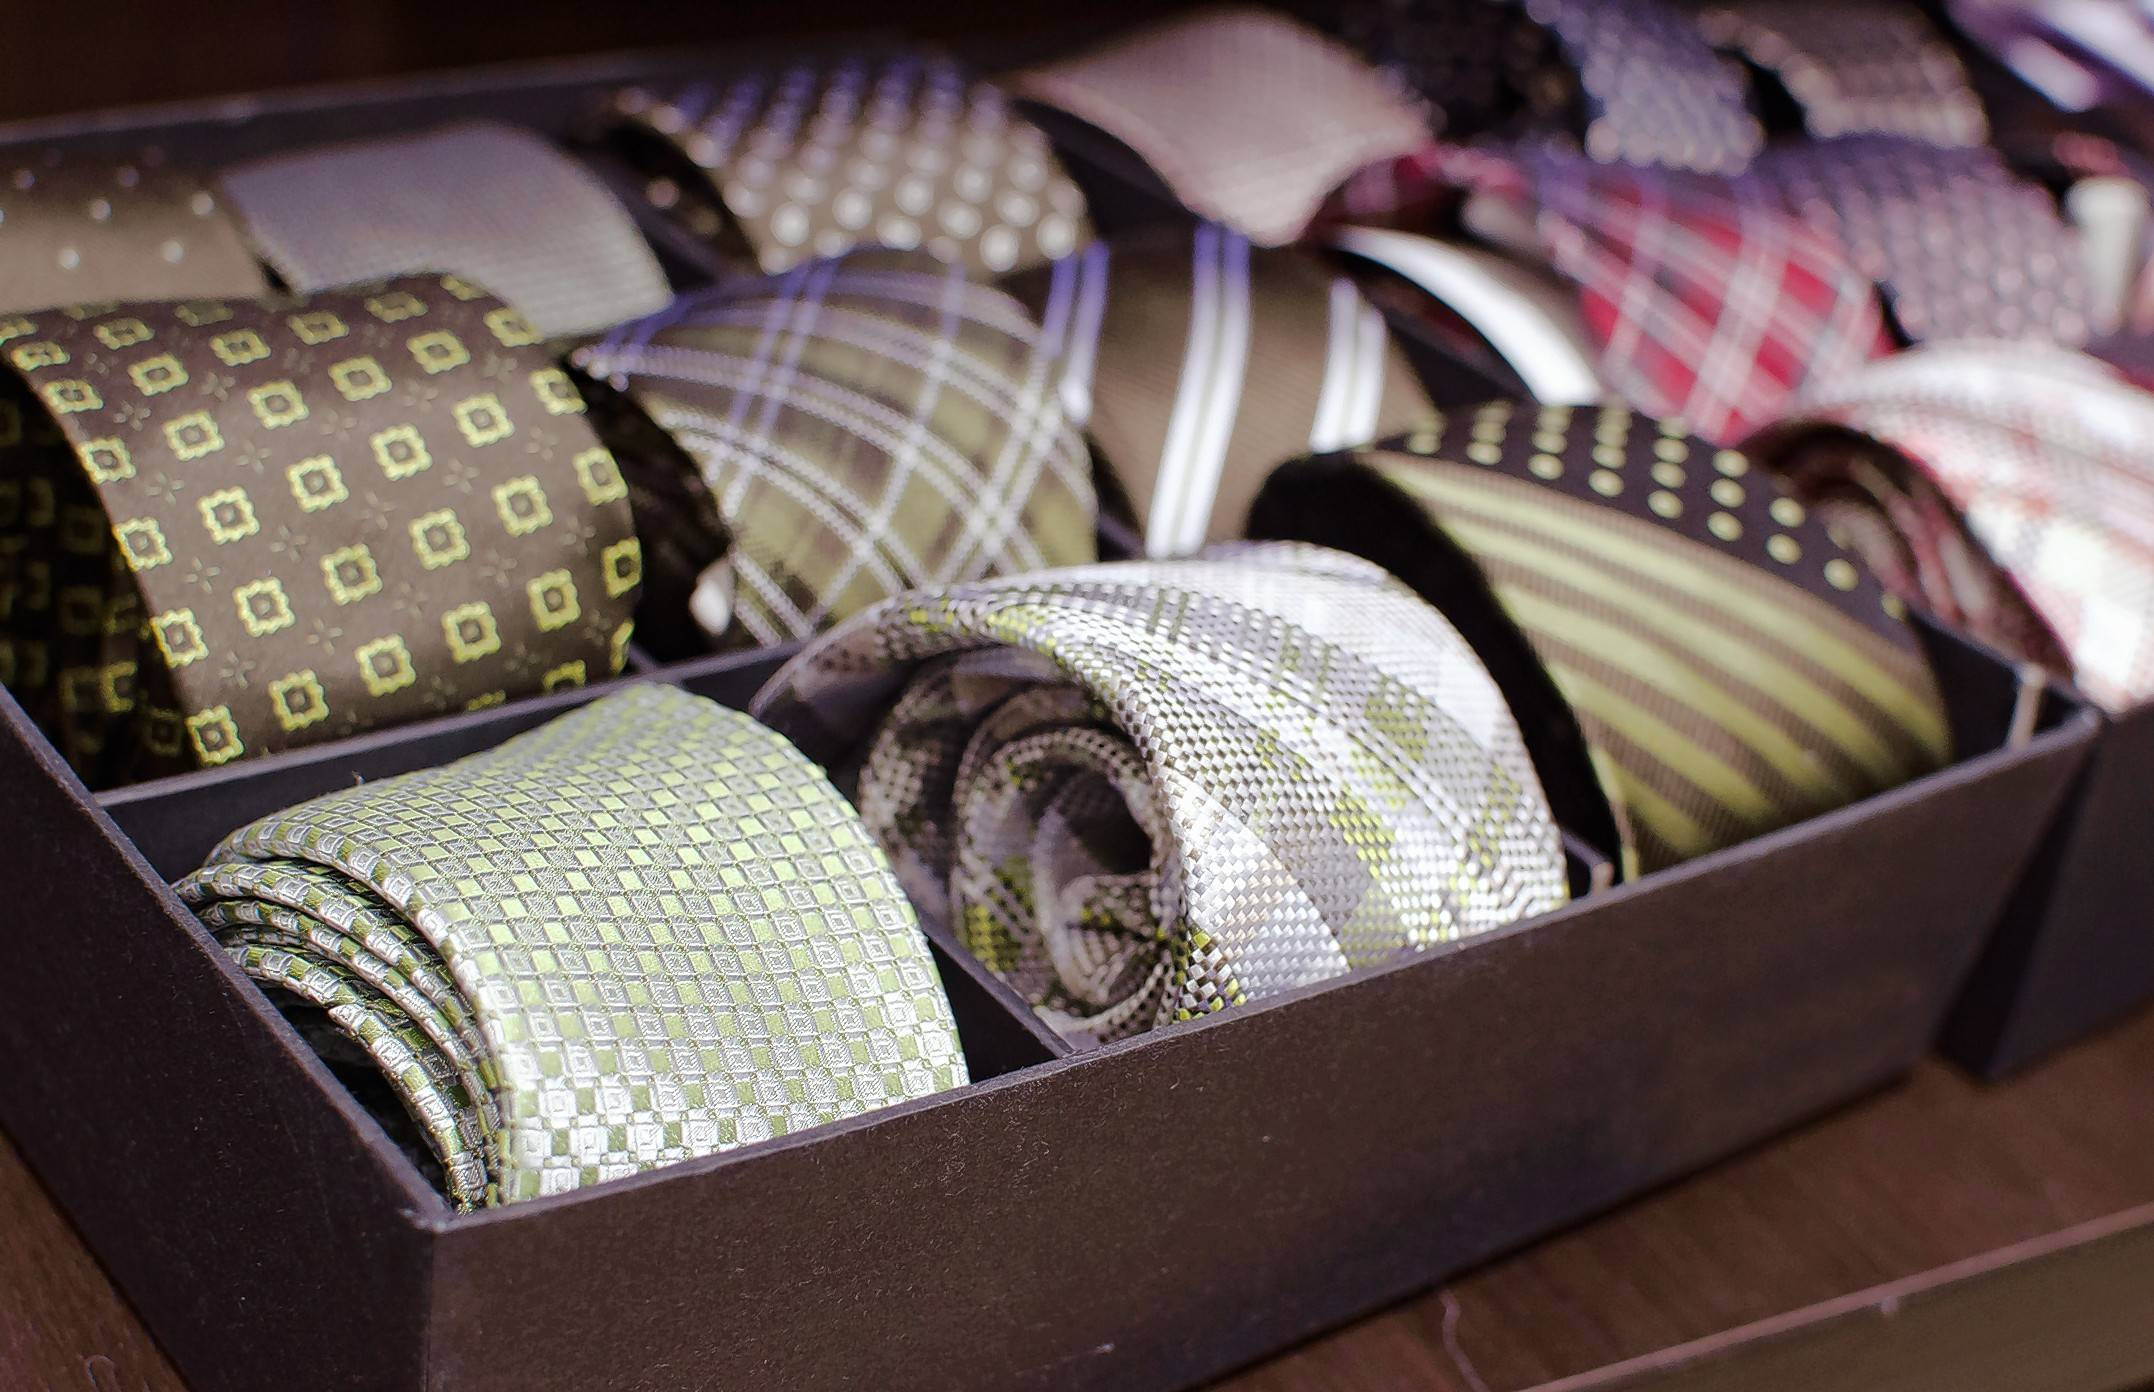 Last month a New York library branch began experimenting with new offerings: neckties, bow ties, handbags and briefcases intended for people with limited resources who are heading for job interviews, auditions or any other event for which they need to dress up.